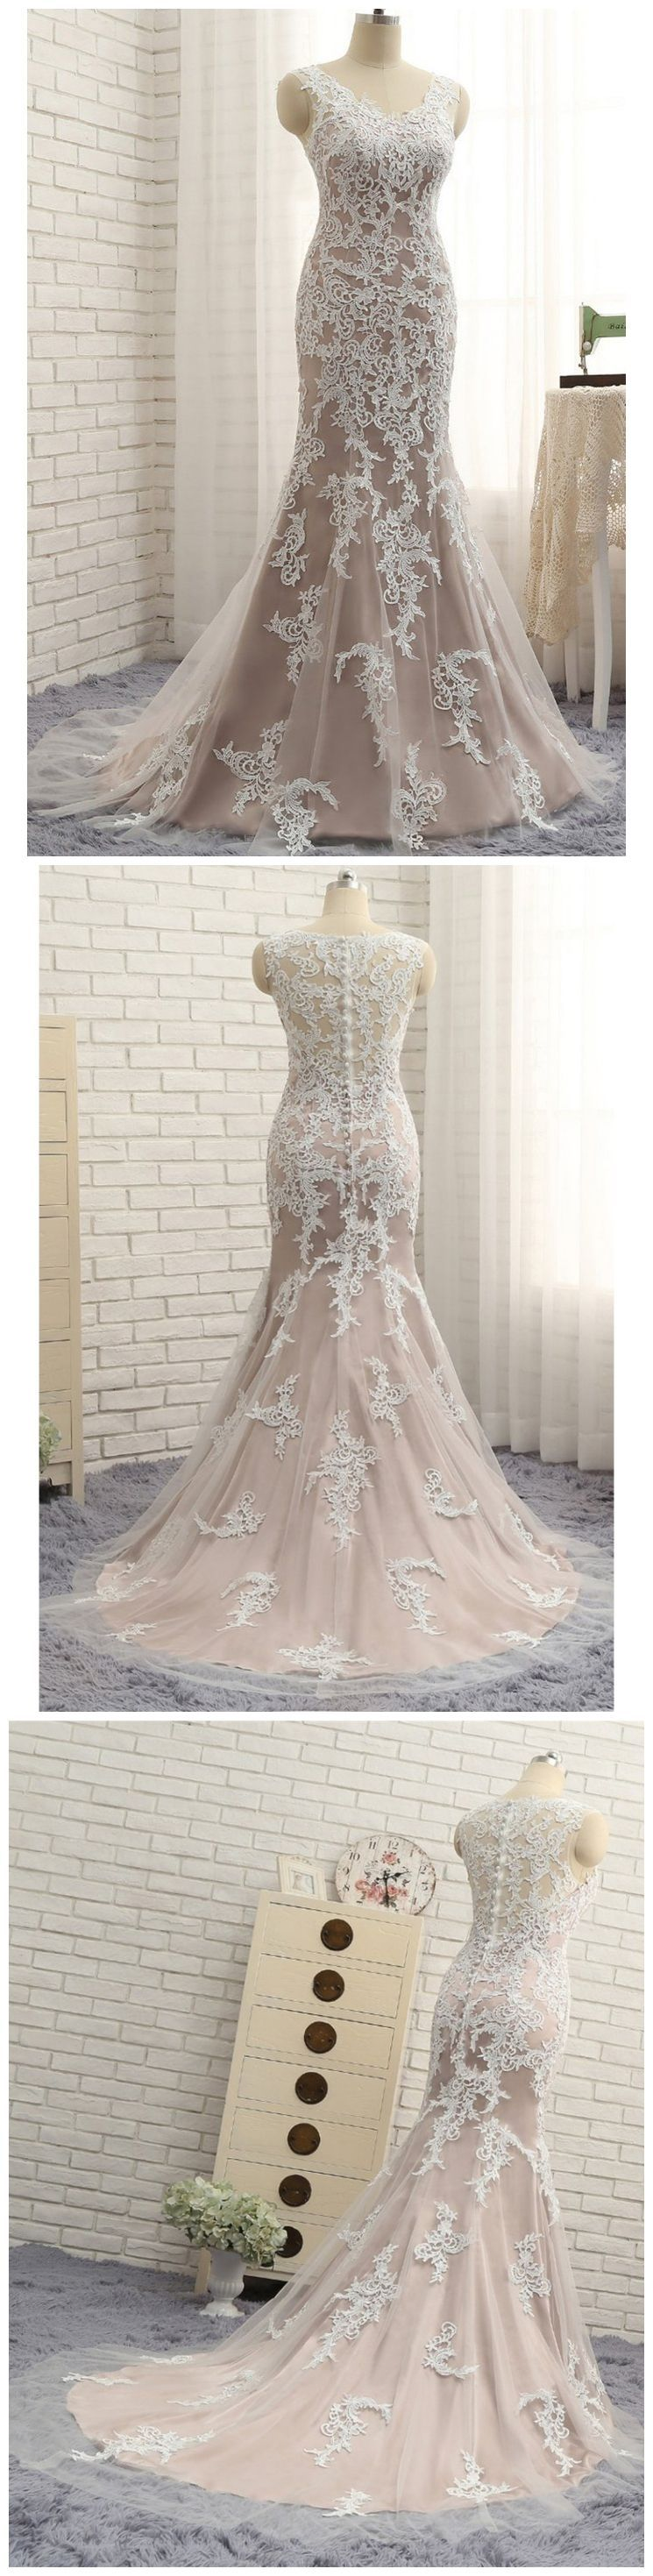 Customized substantial prom dresses ball gown prom dresses plus